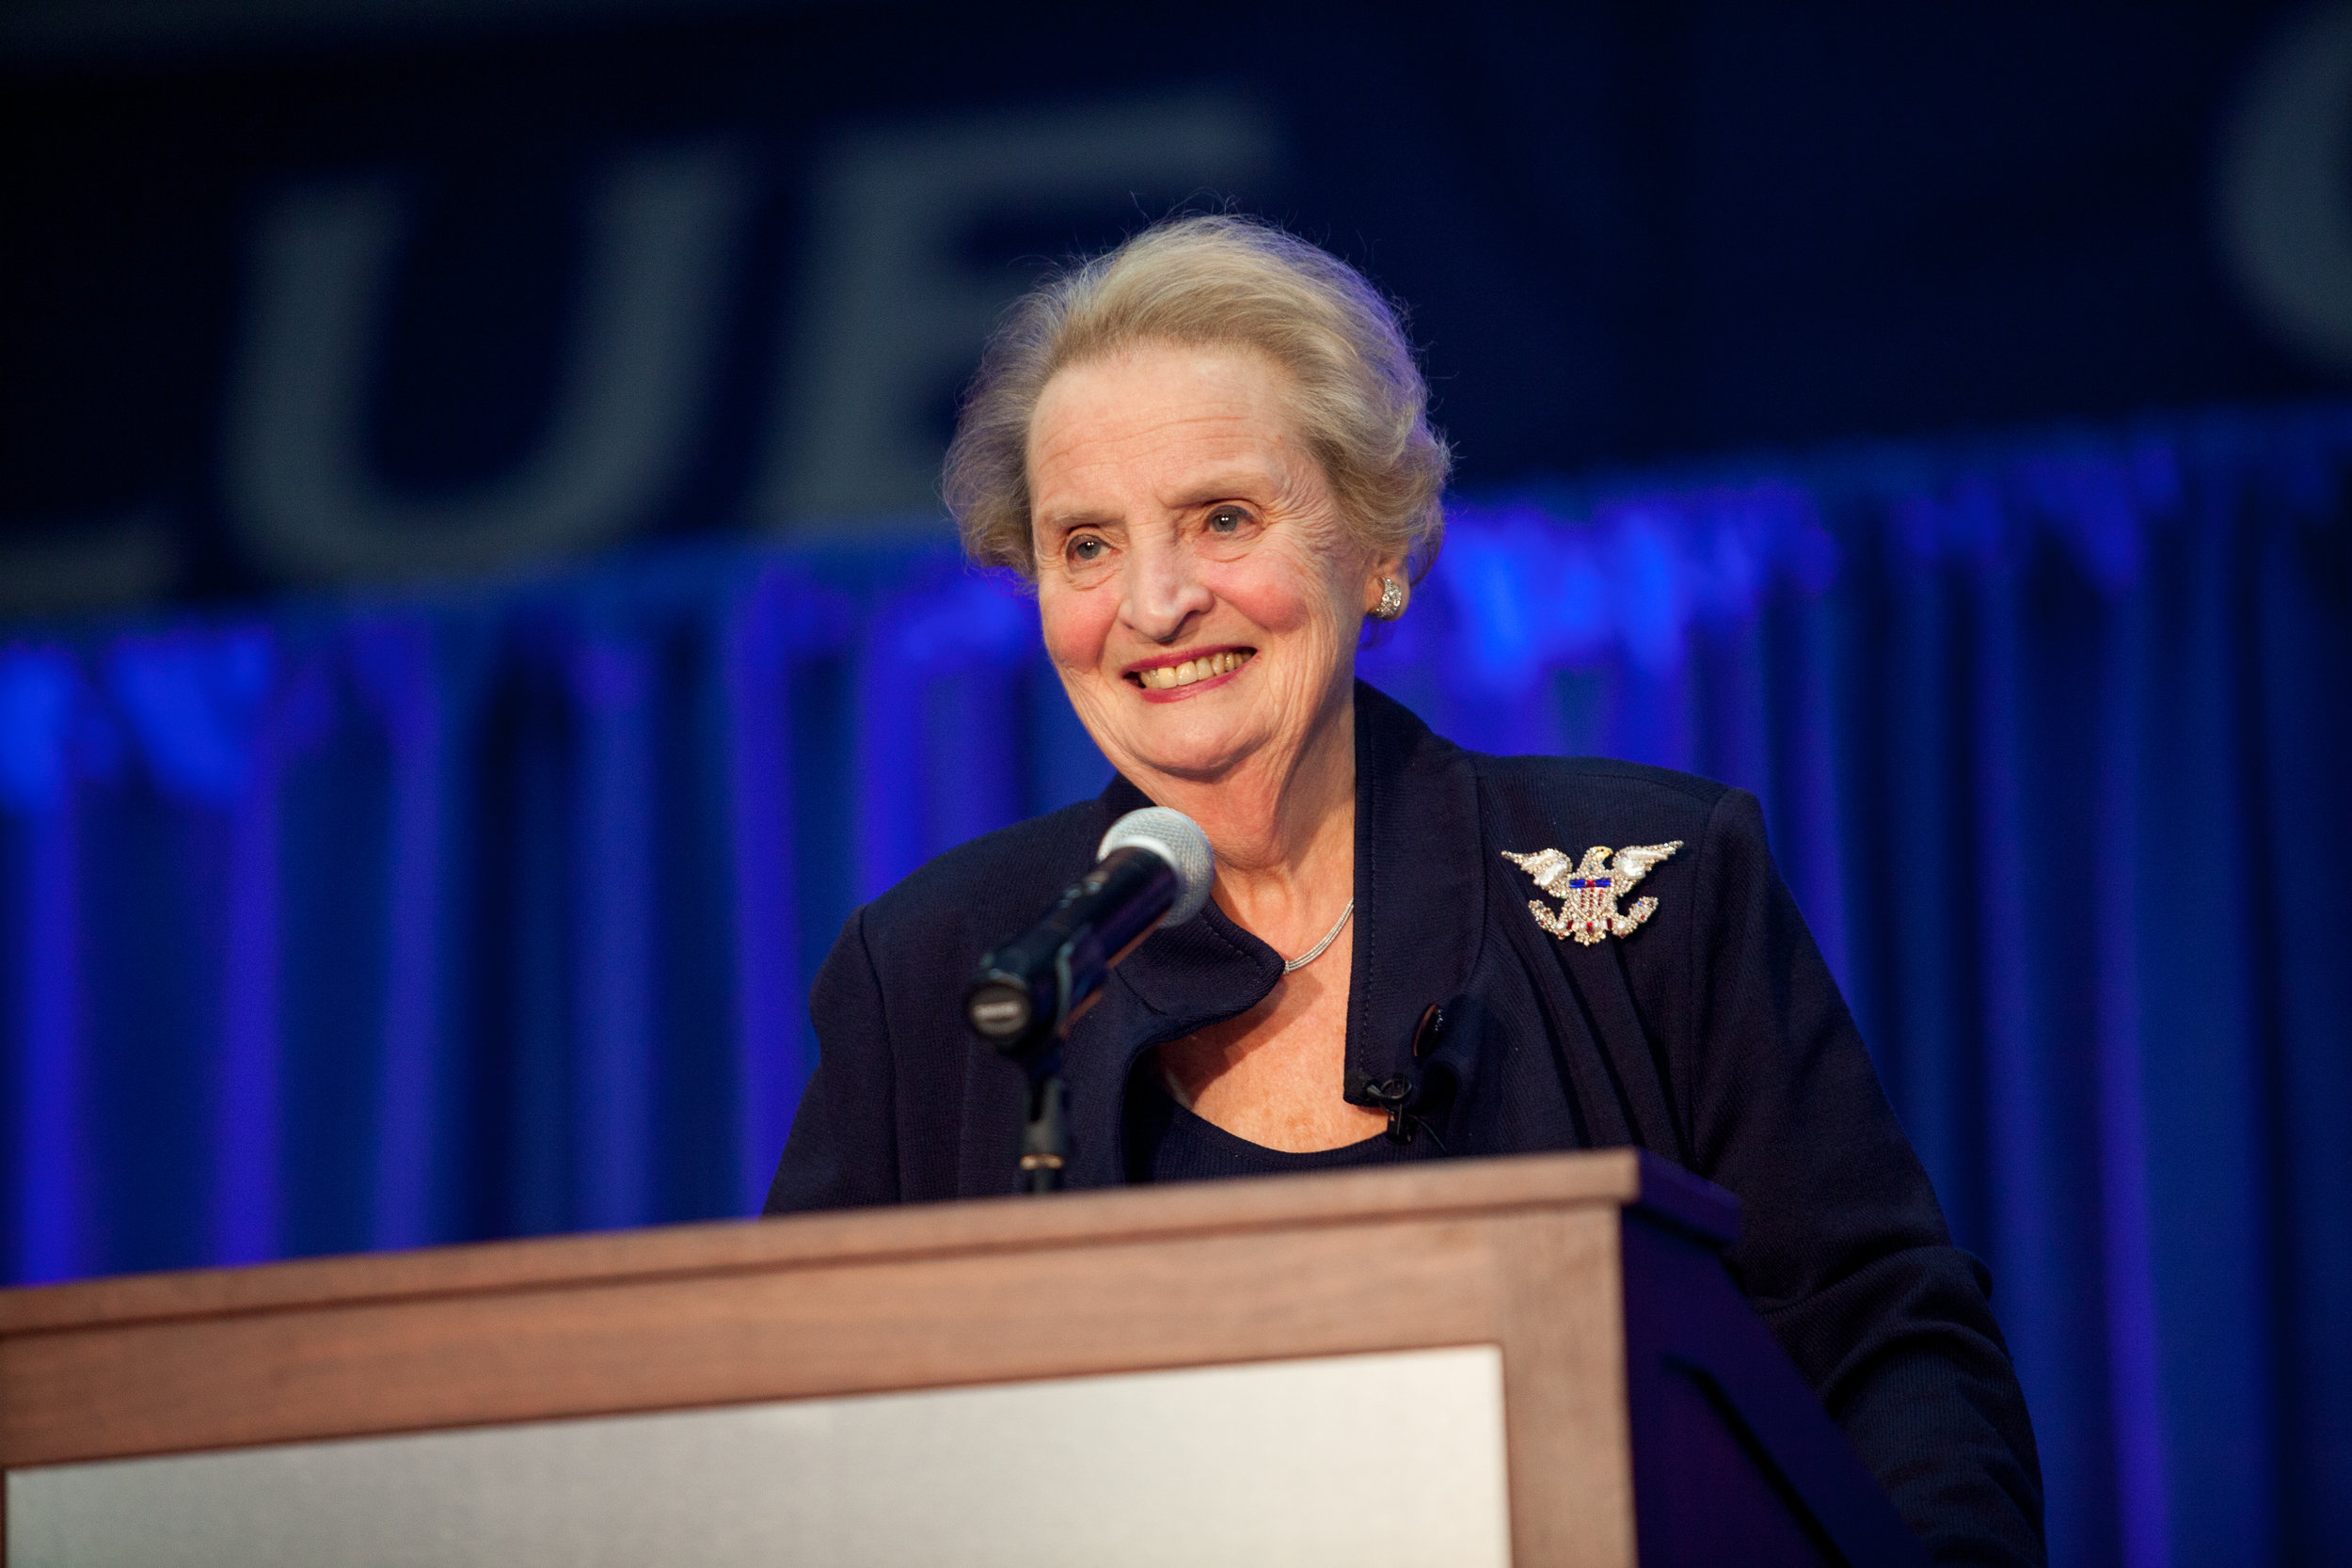 IMG_9826Anna_Moneymaker_MadeleineAlbright.jpg